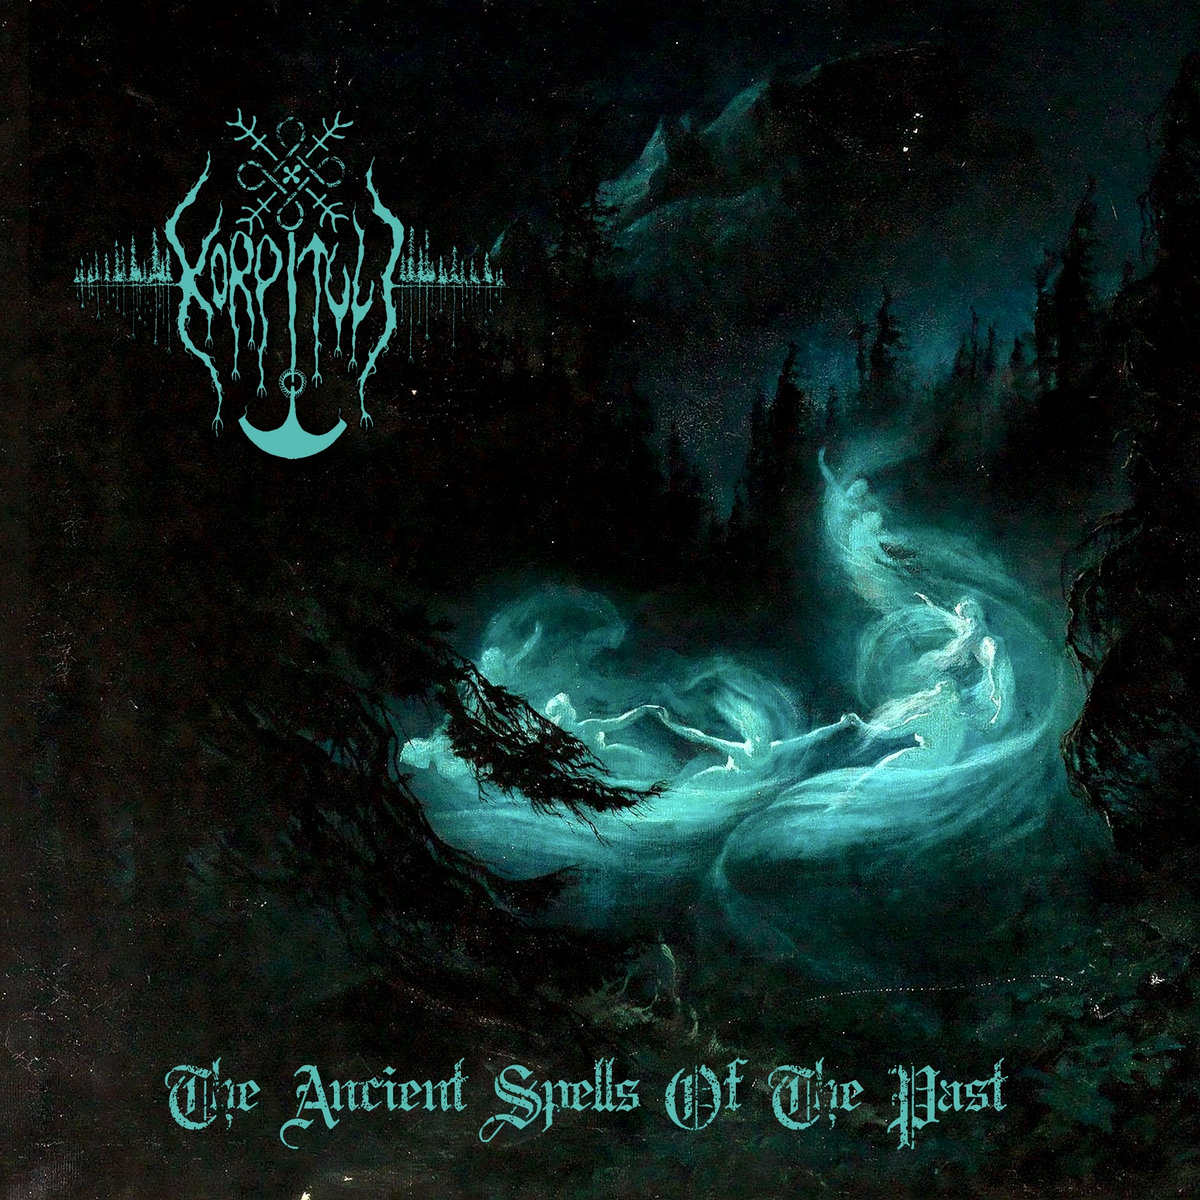 Korpituli - The Ancient Spells Of The Past (2021)